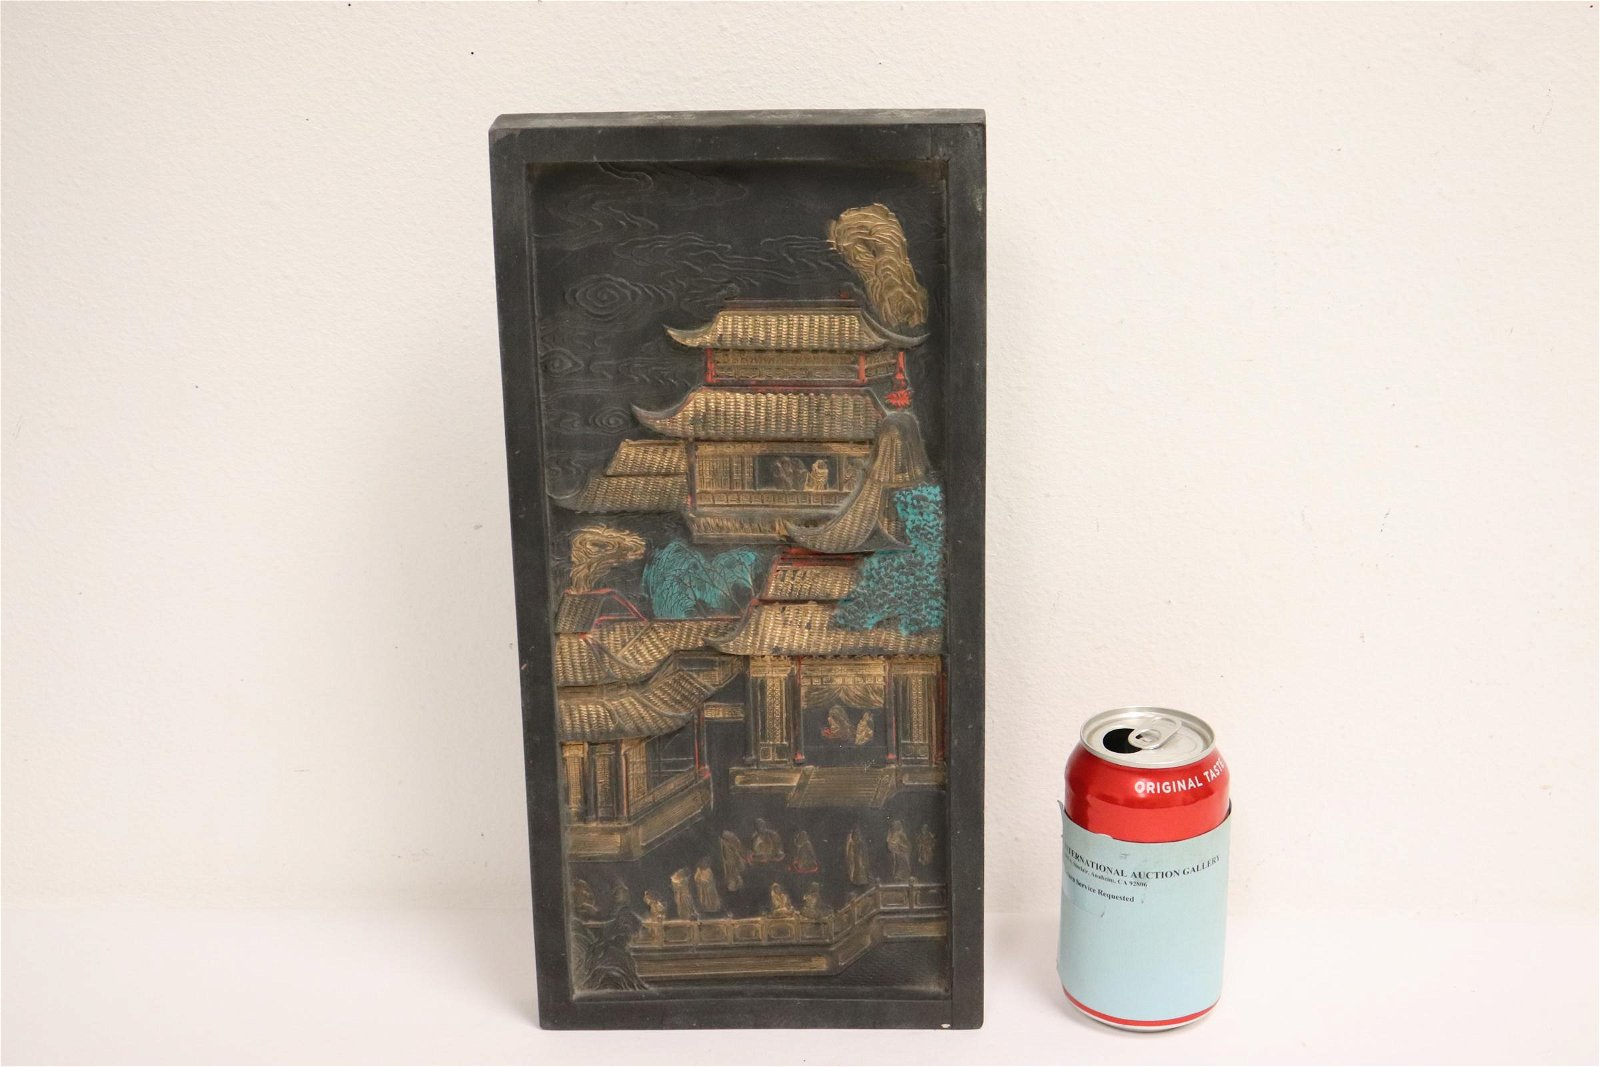 A massive Chinese ink/inkwell